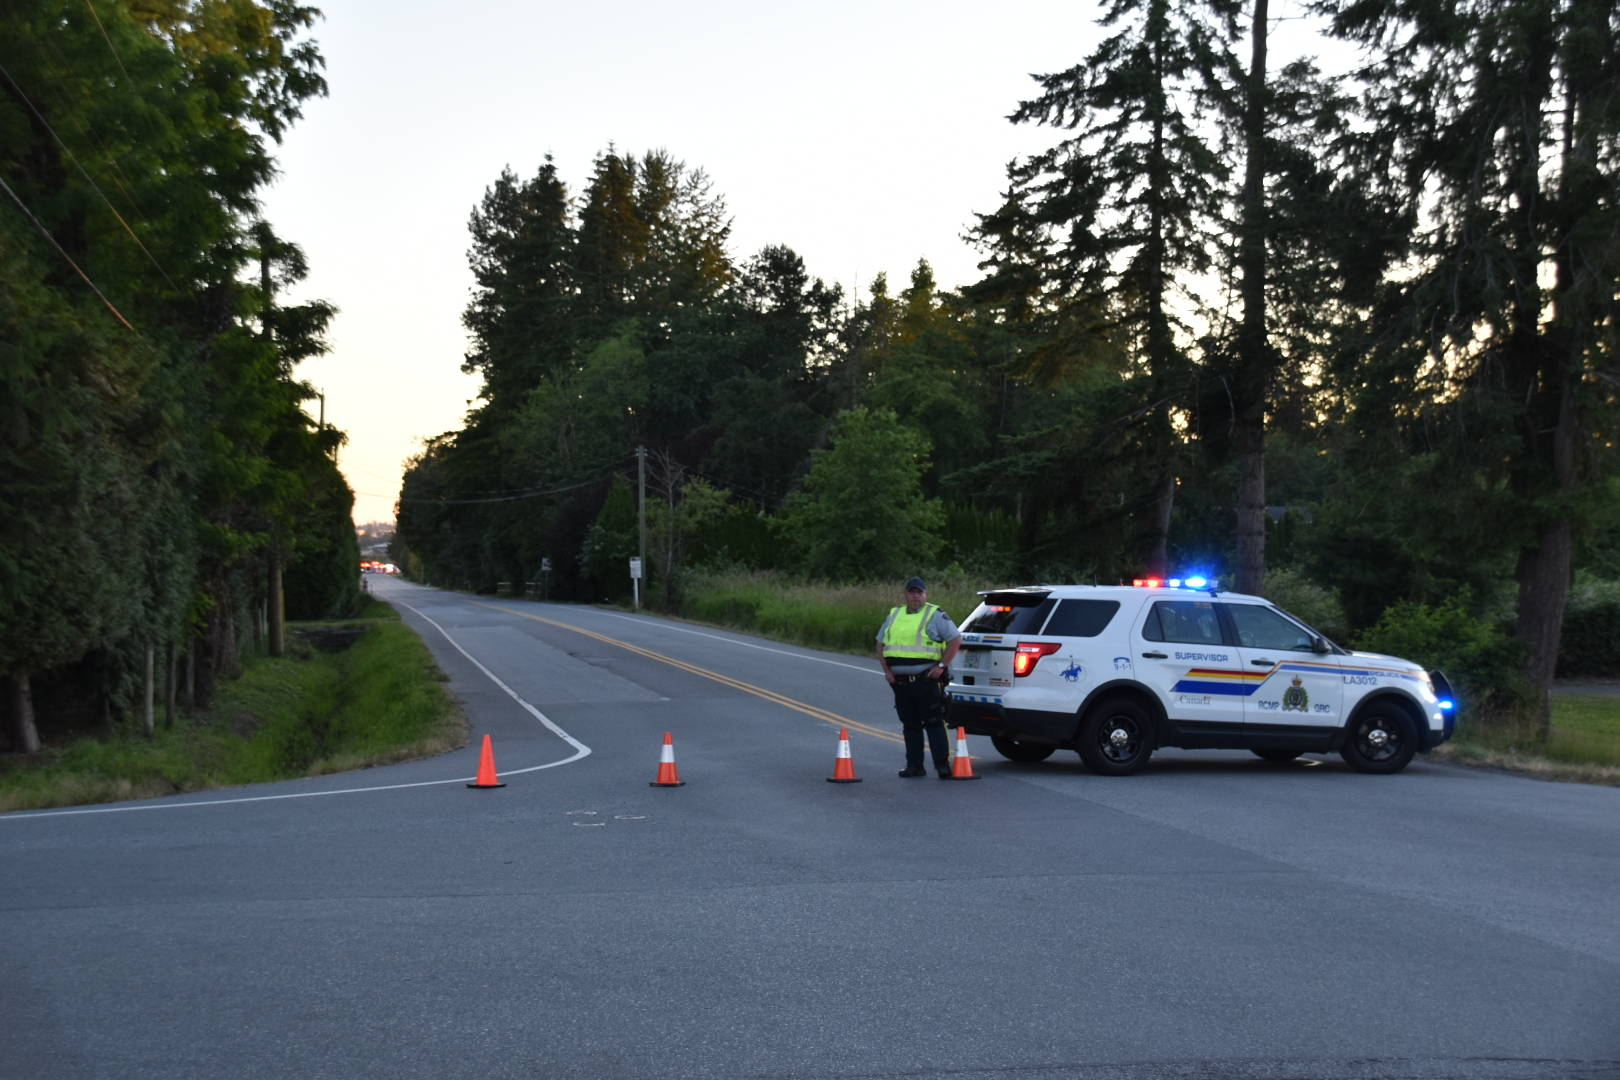 First responders were called to a single-vehicle crash in the 21900 block of 56th Avenue in the Murrayville neighbourhood on June 23, 2021 around 8:45 p.m. The two occupants in the vehicle were taken to hospital, one of which was a two-year-old boy, who remains in critical condition. (Curtis Kreklau/Special to Langley Advance Times)